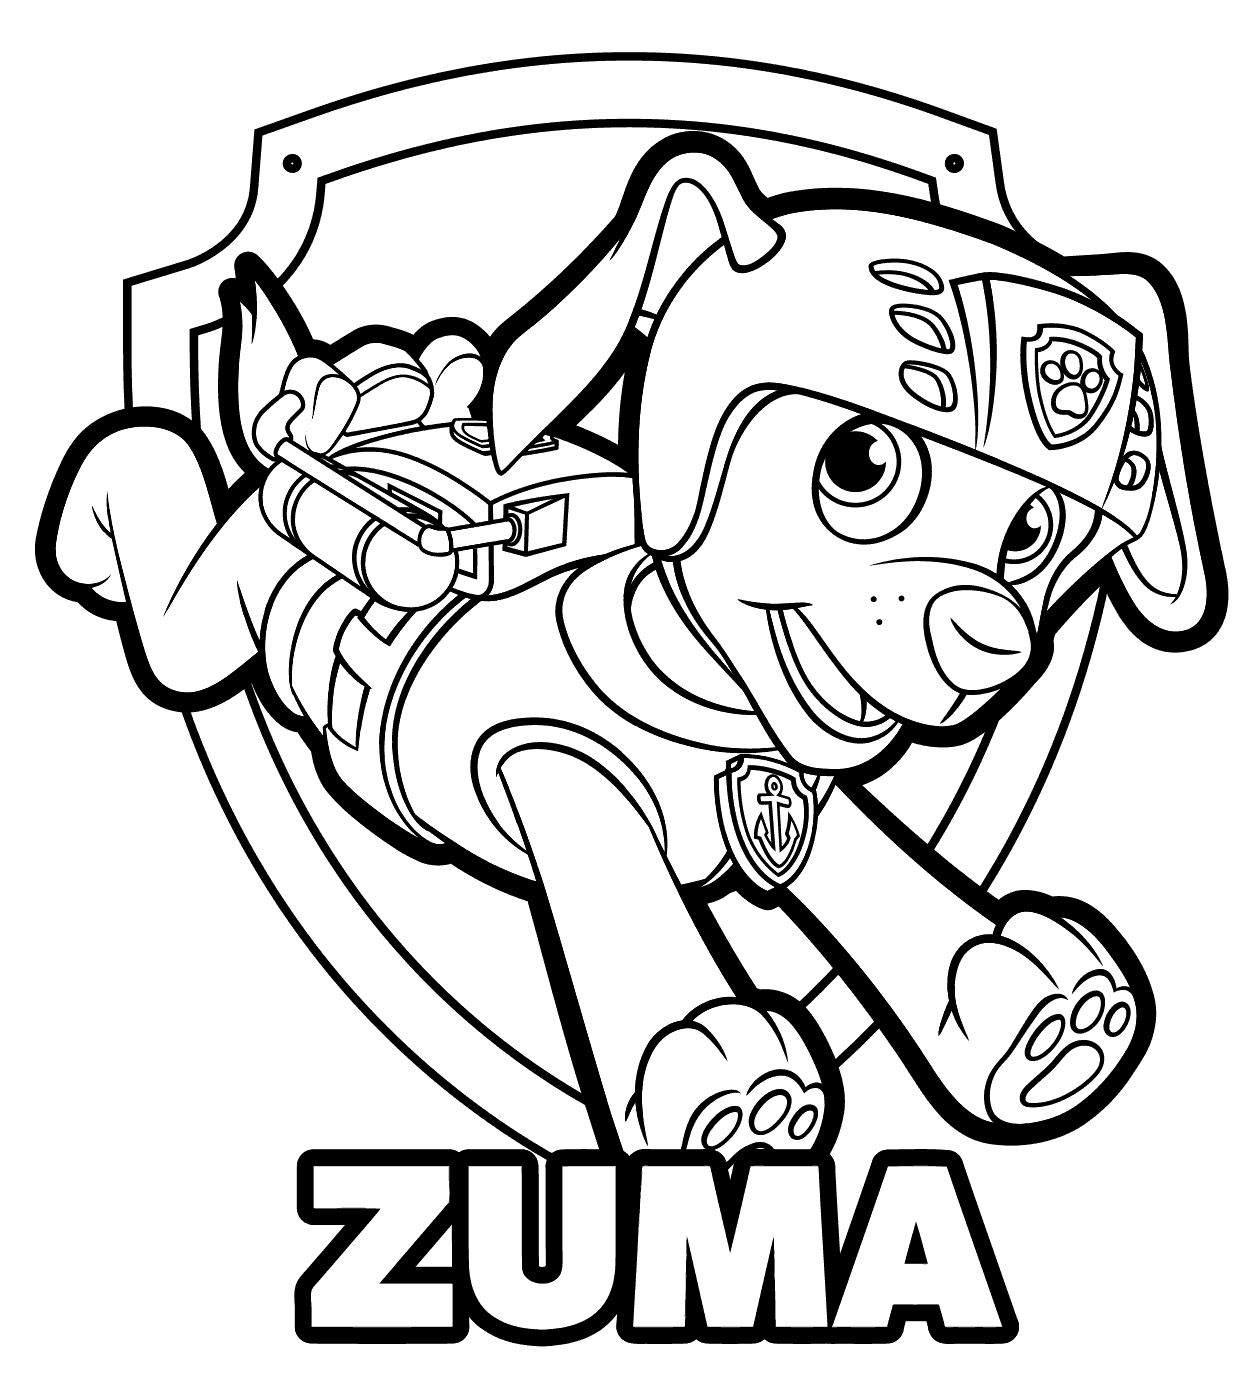 1260x1400 paw patrol coloring pages kids school paw patrol coloring